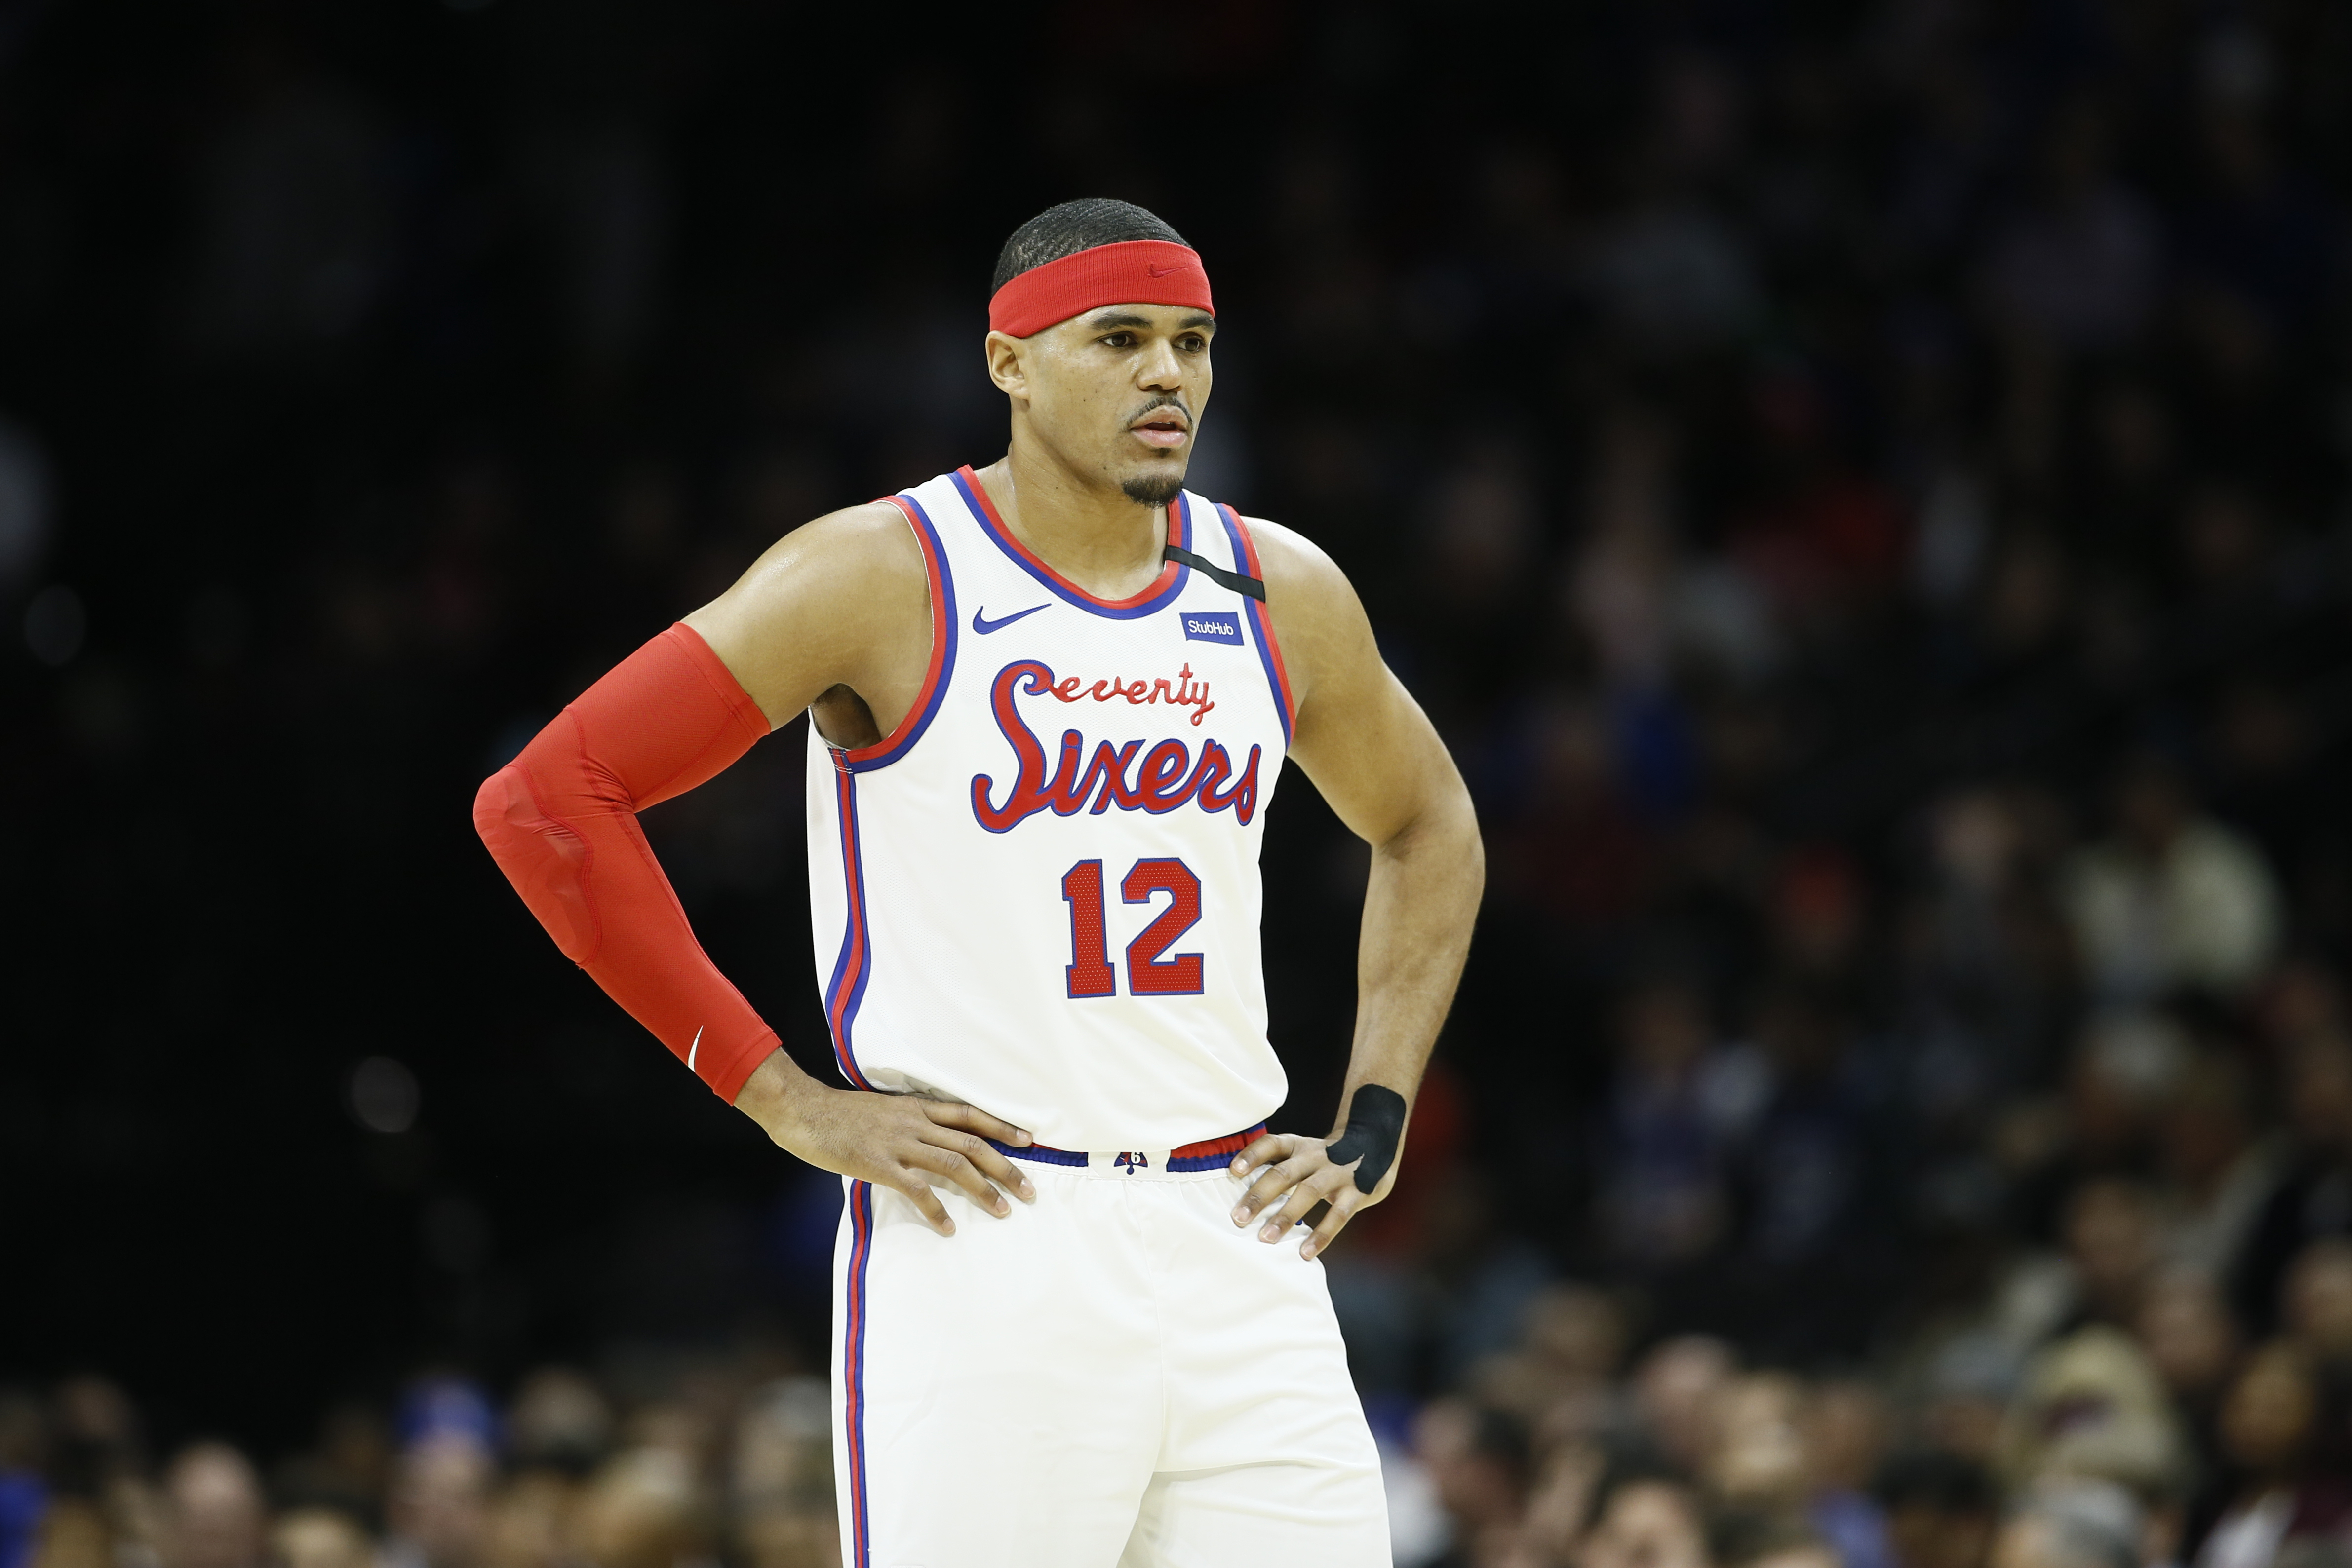 """Sixers forward Tobias Harris was eager to join Kobe Bryant's camp. """"I don't really care who was there, I'm just trying to go and learn and improve. That's how I approached it,"""" he said."""